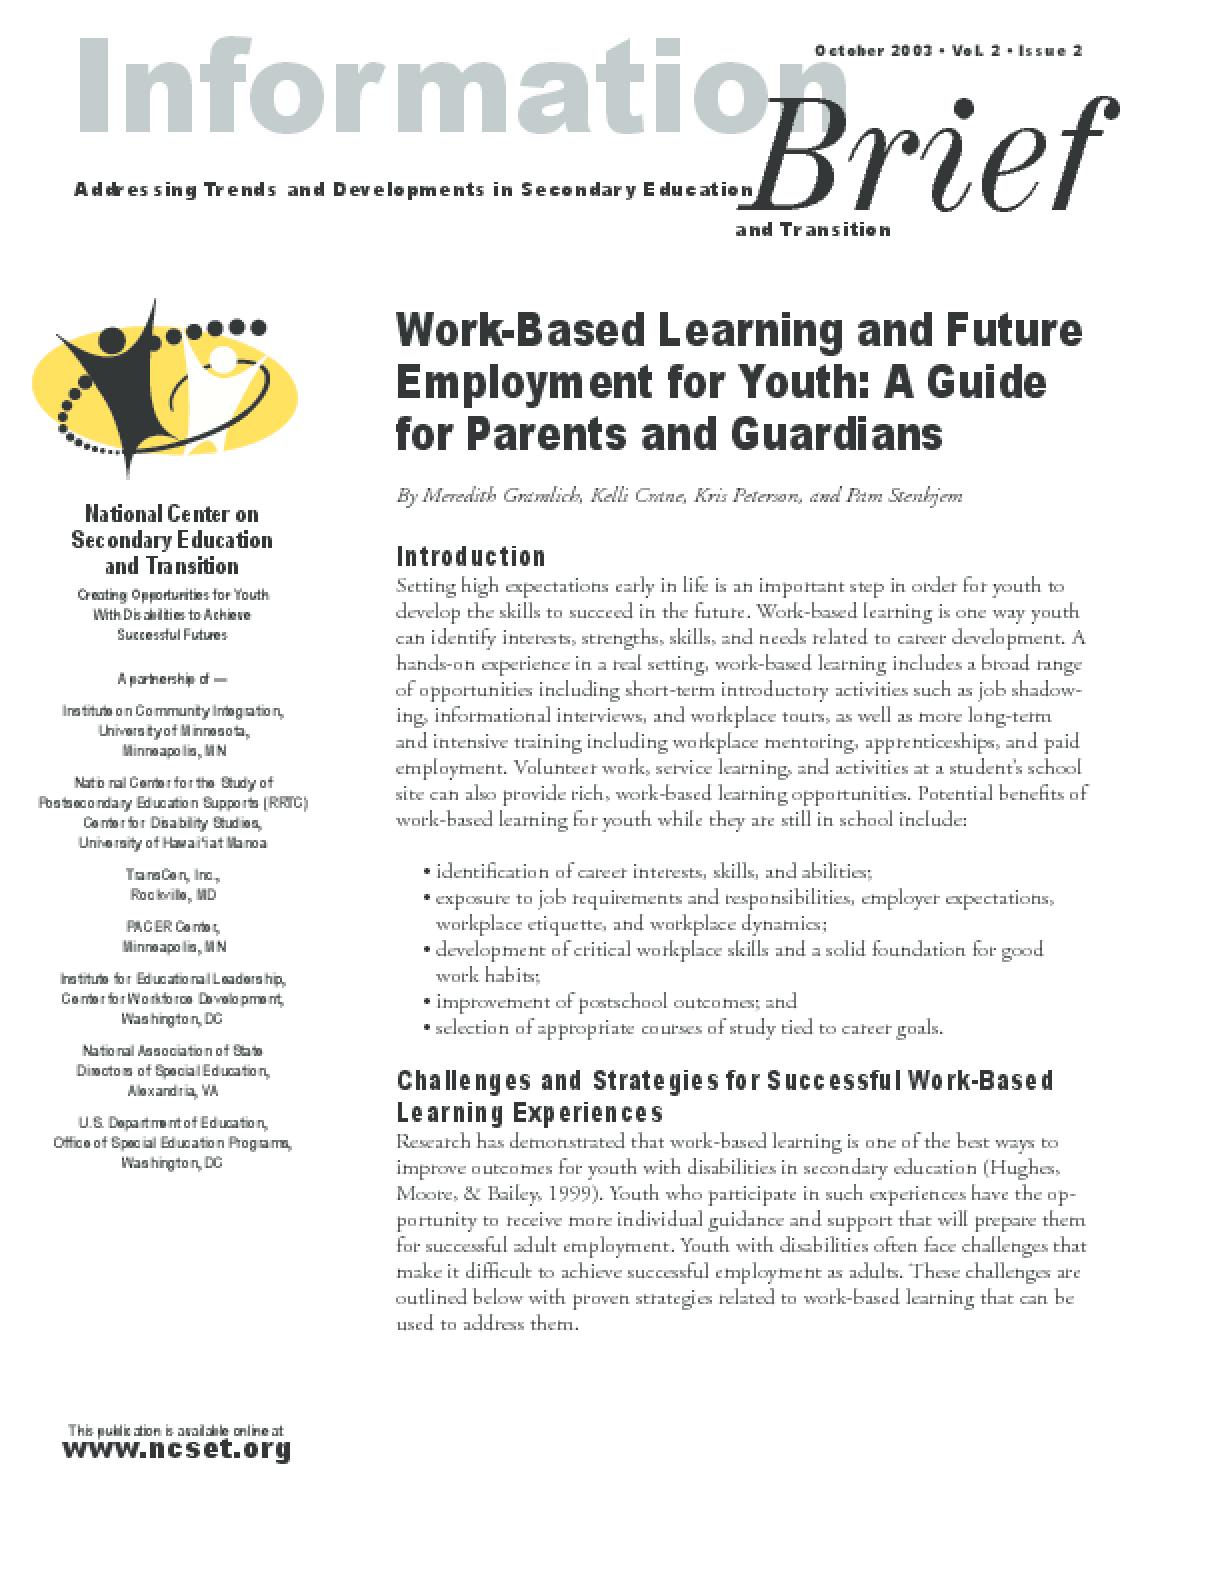 Work-Based Learning and Future Employment for Youth: A Guide for Parents and Guardians